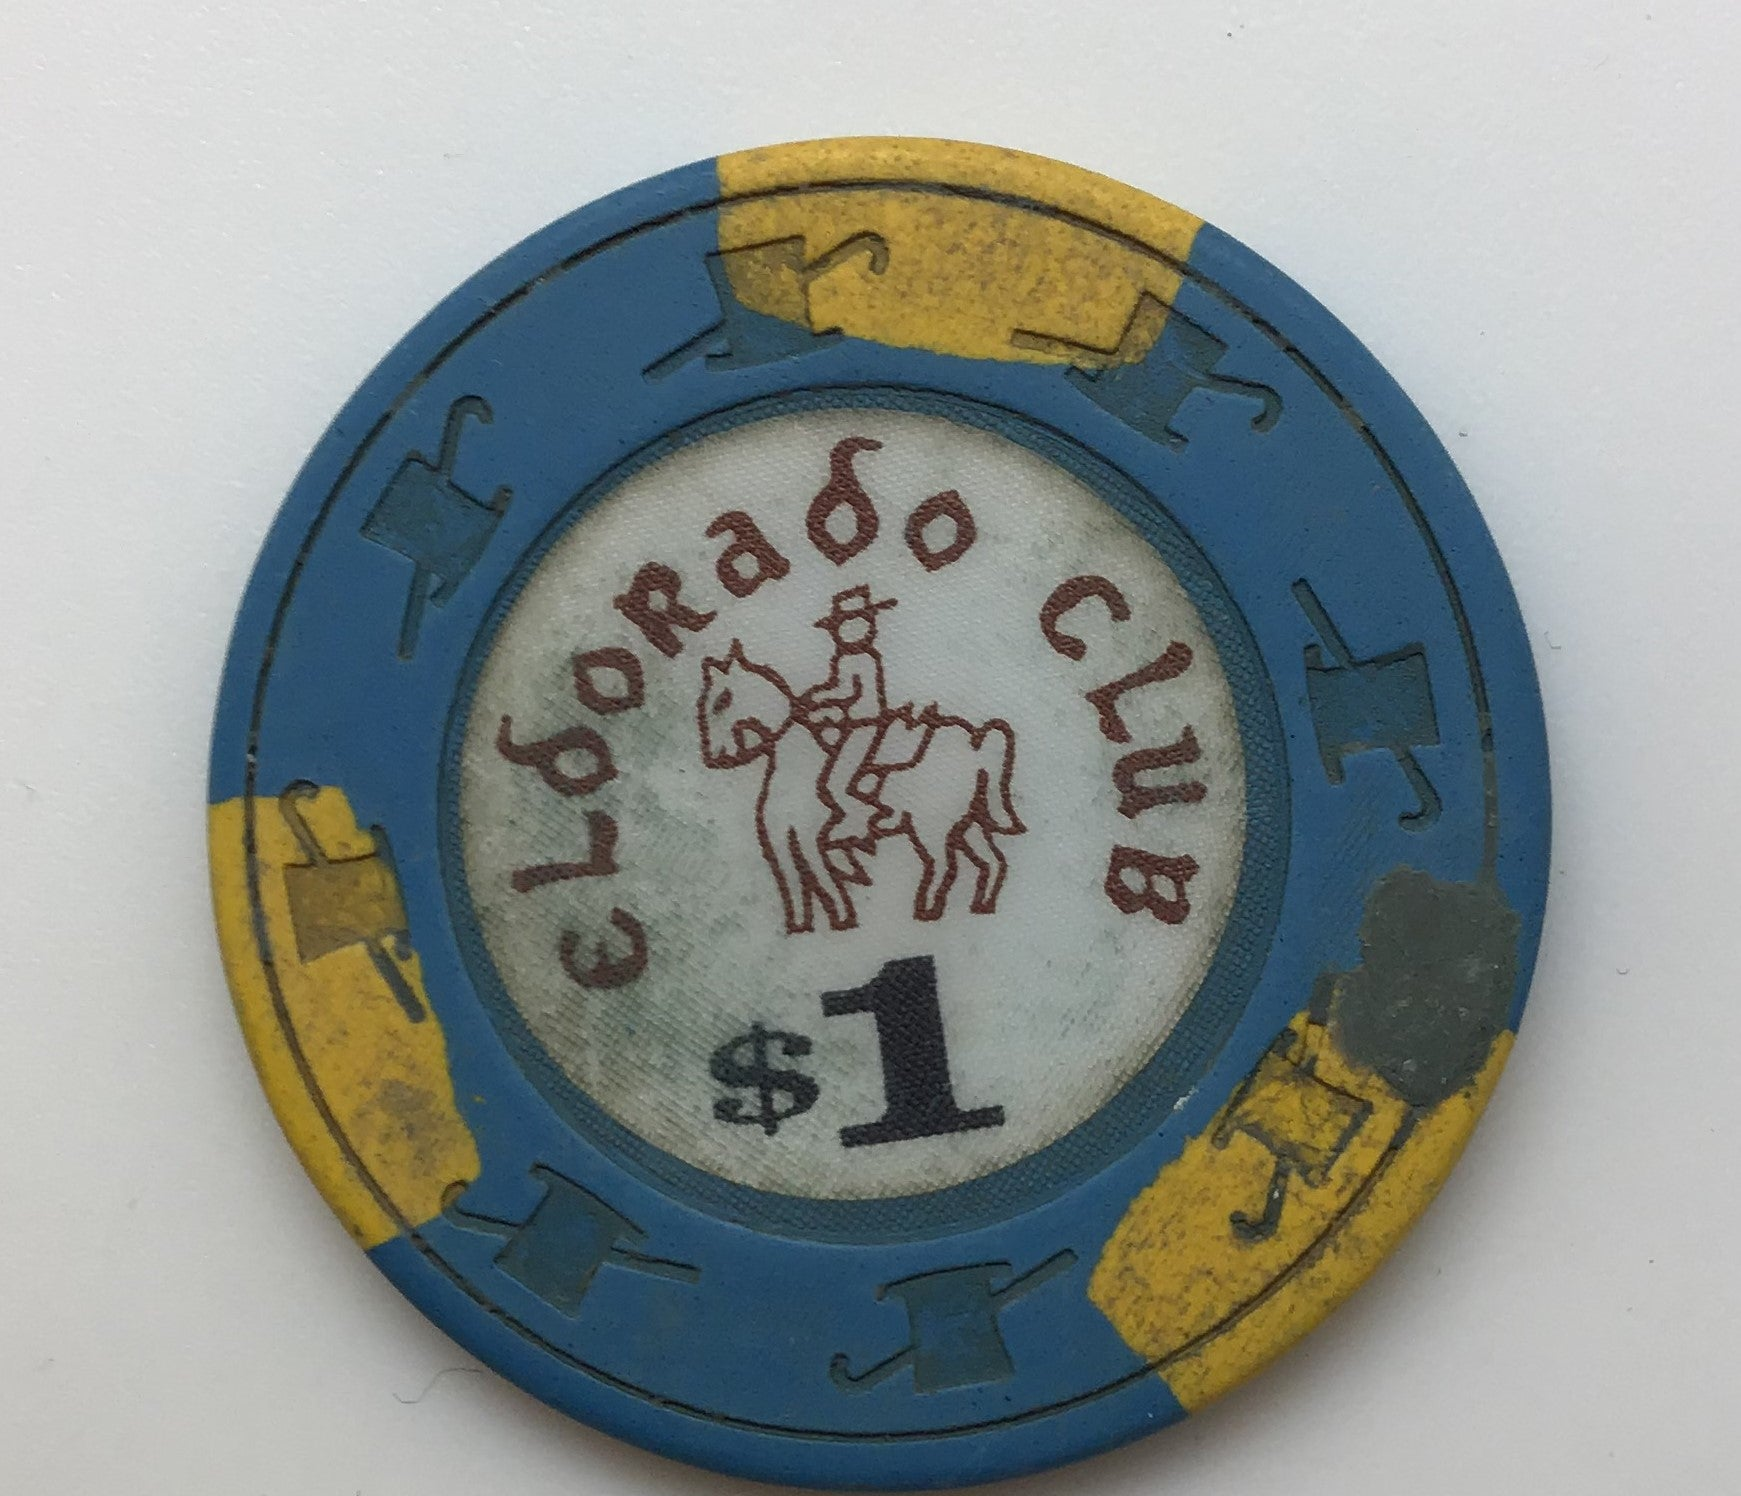 El Dorado Club Casino $1 Chip Gardena, California